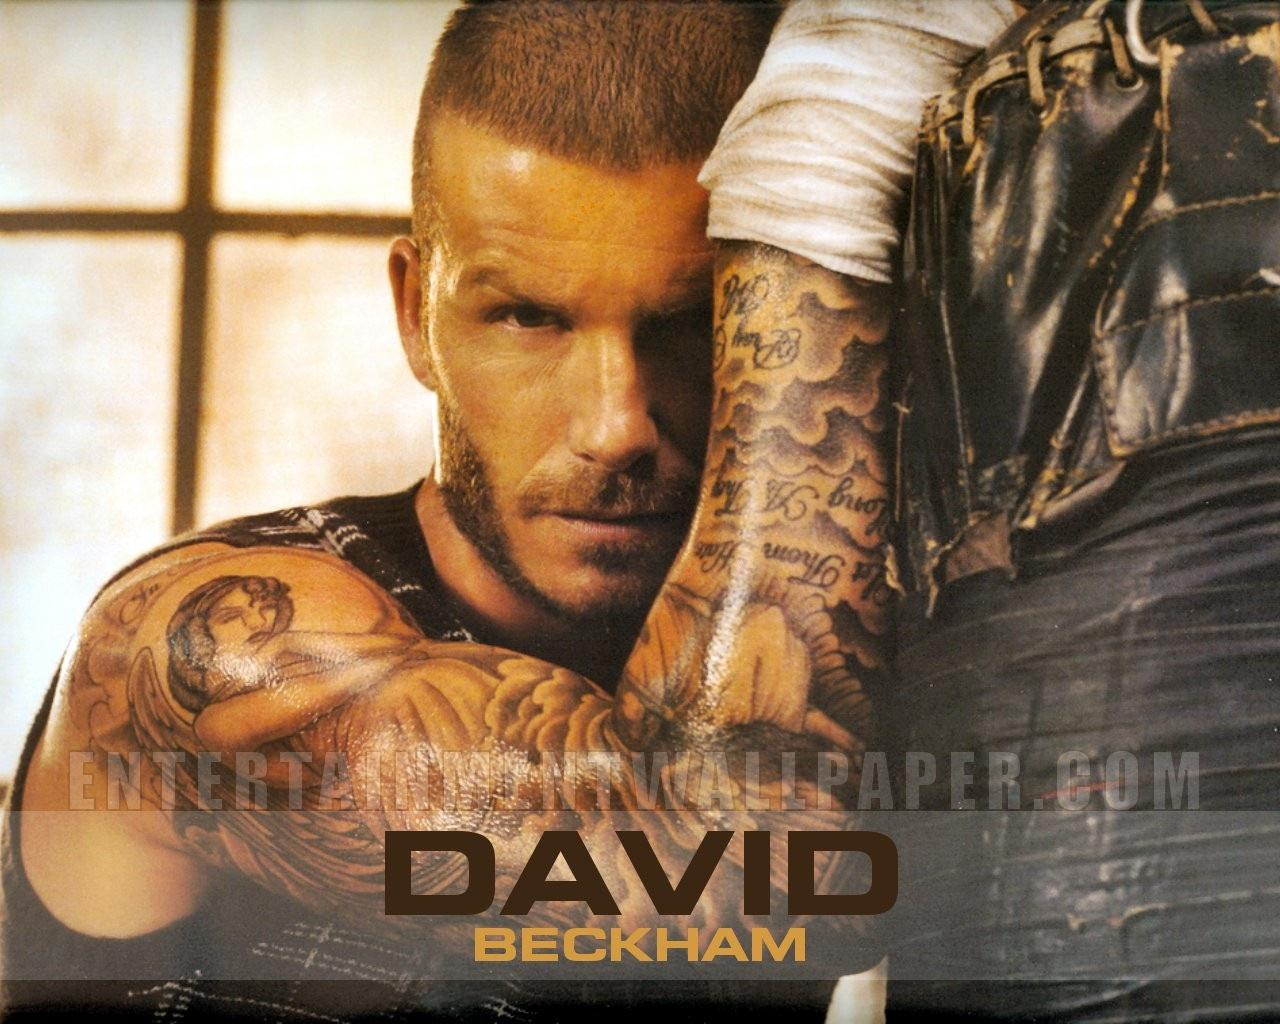 Description David Beckham Tatto Wallpaper is a hi res Wallpaper for 1280x1024